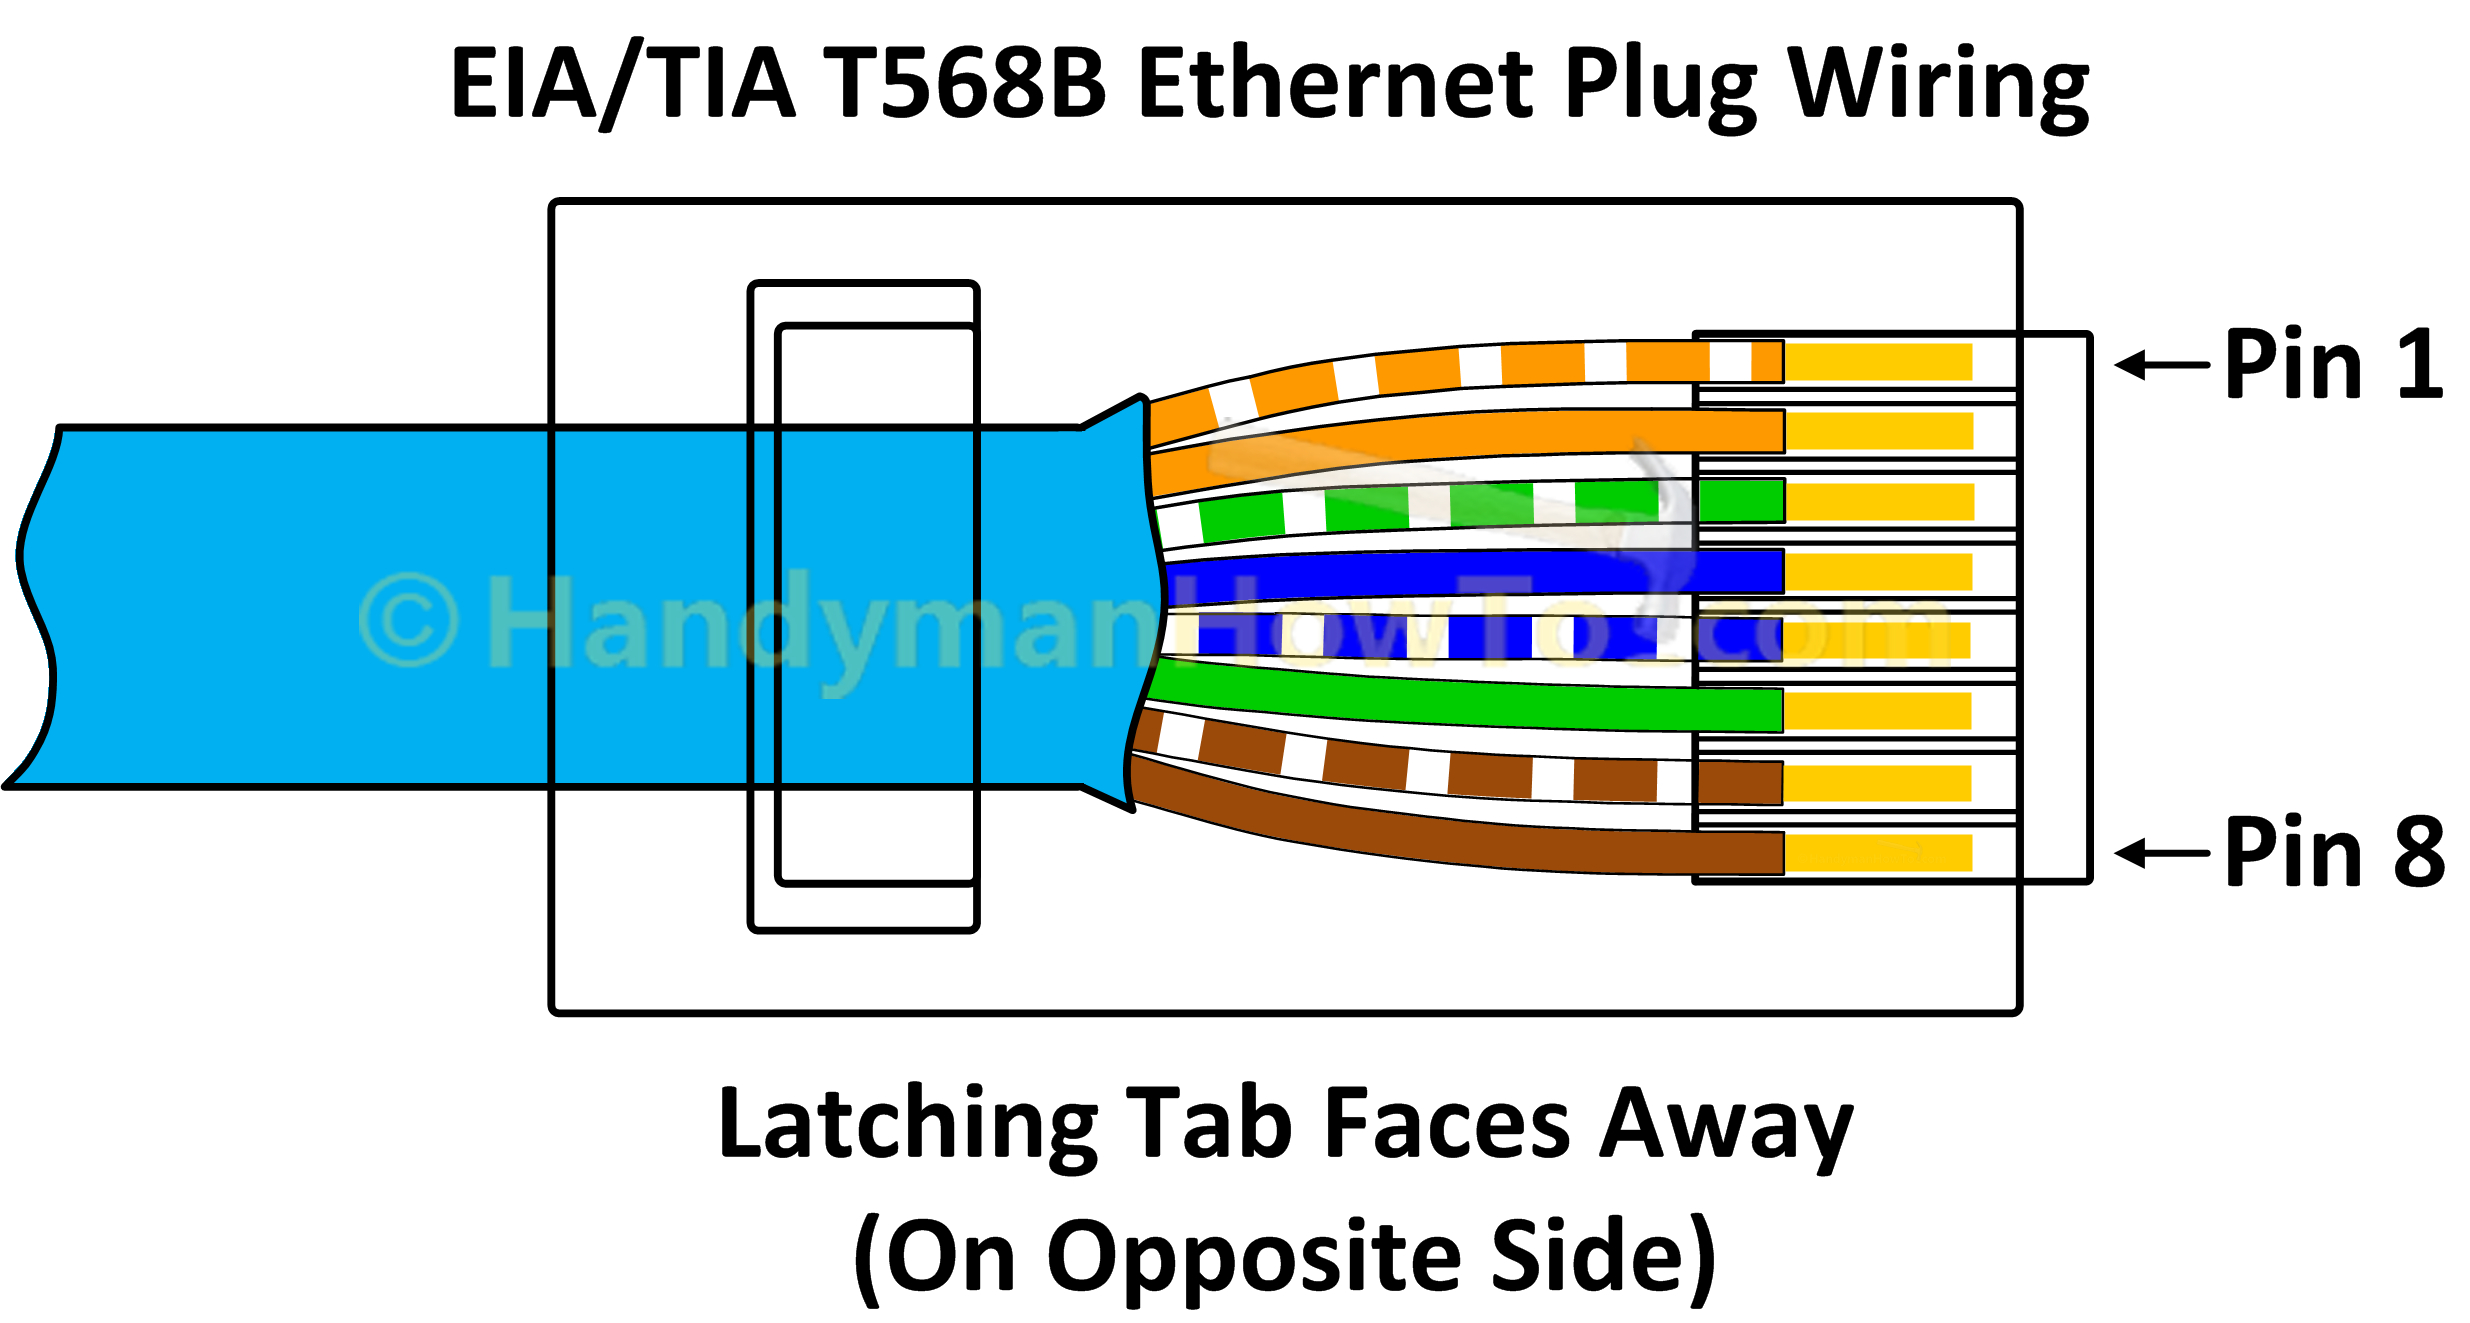 Tia 568B Wiring Schema - Wiring Diagram Data - 568 B Wiring Diagram